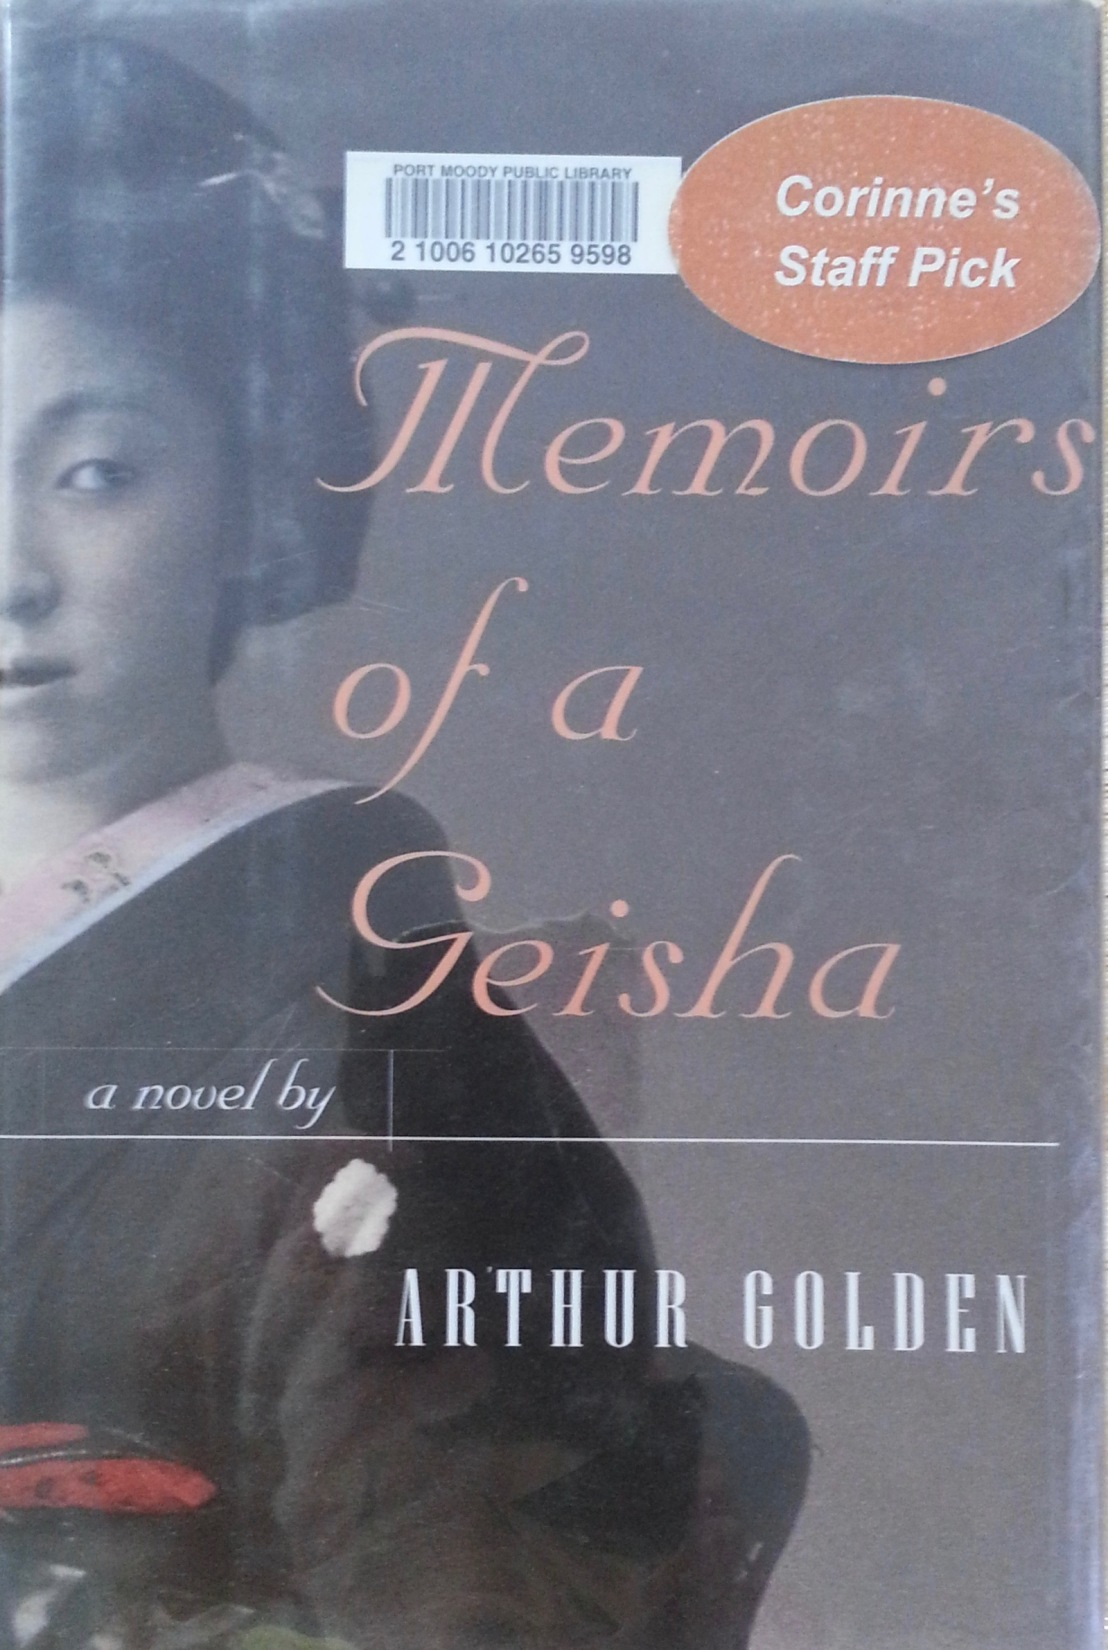 Arthur Golden's — Memoirs of a Geisha *****